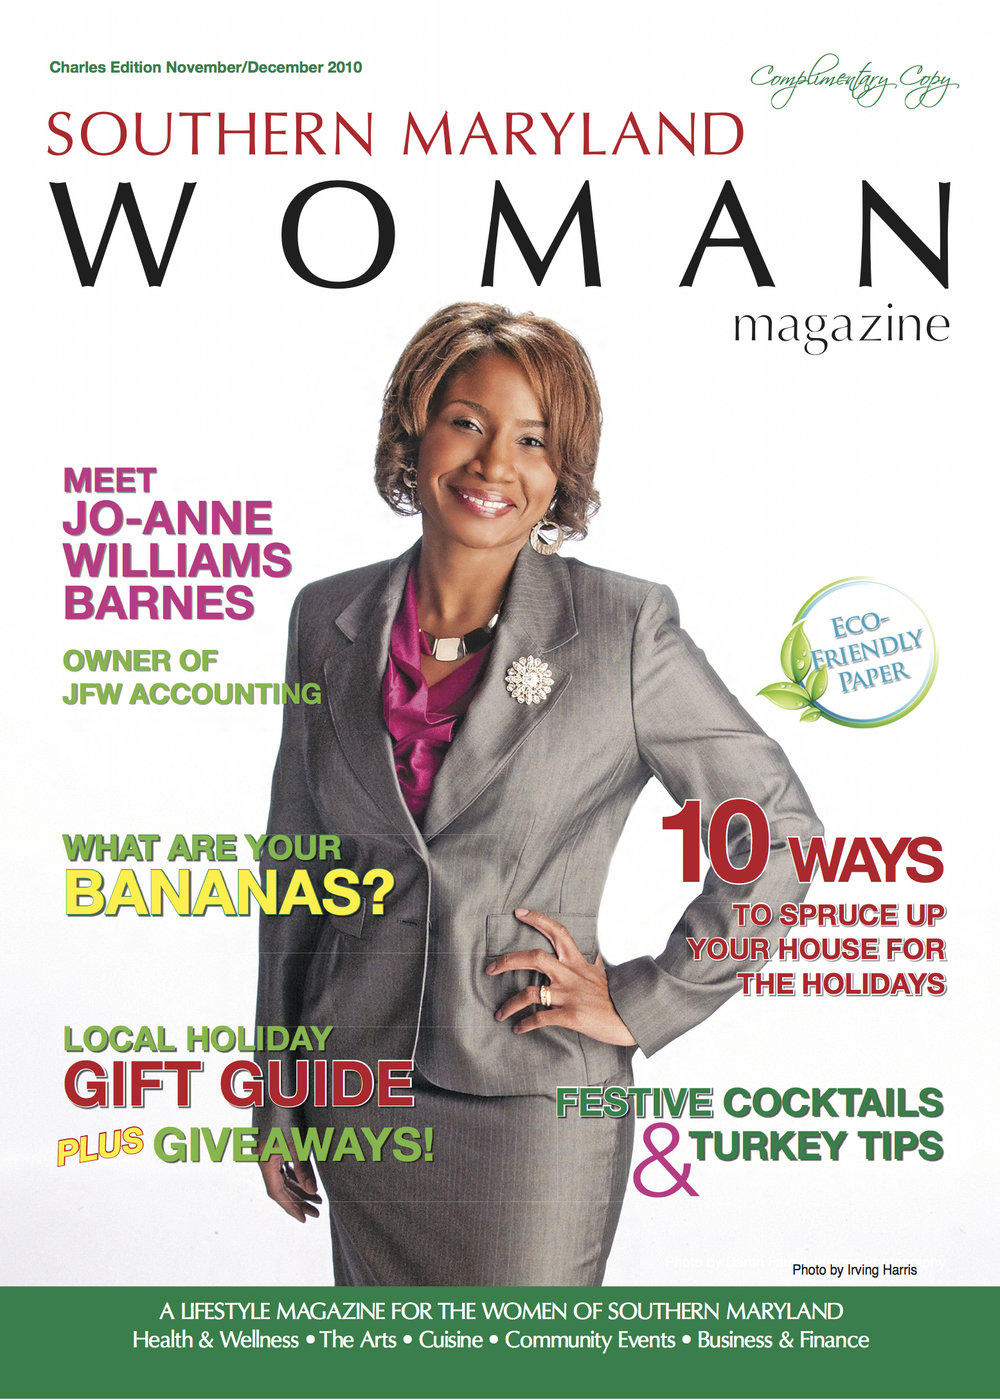 Another cover for Southern Maryland Woman Magazine